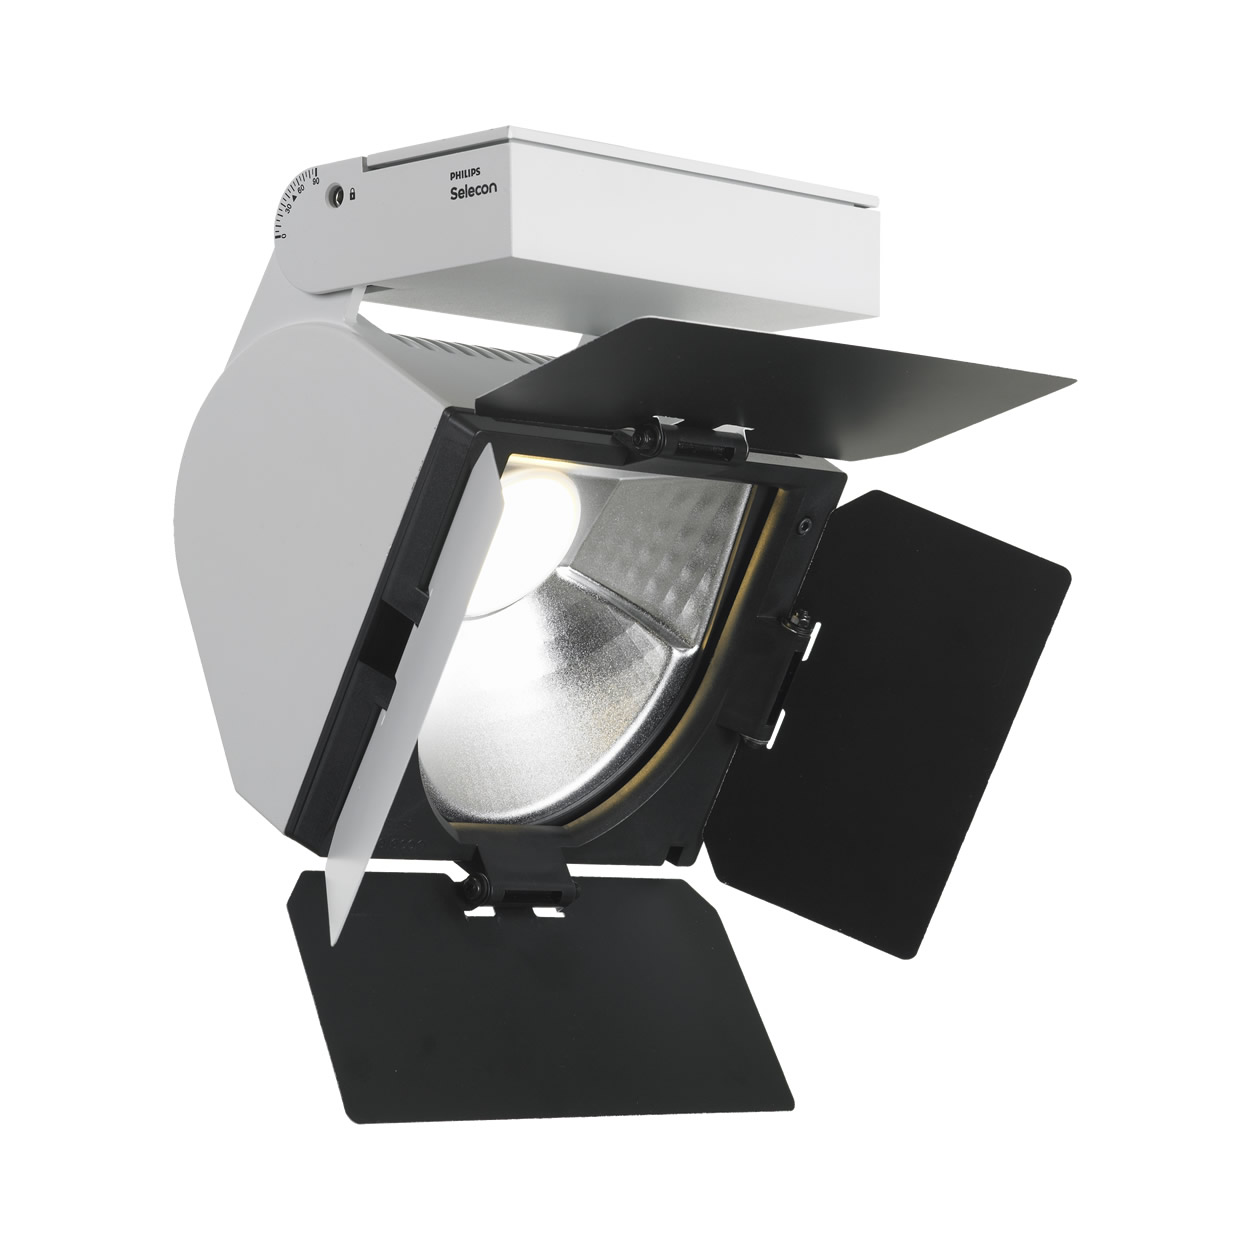 Philips Selecon Wing LED Wall Washer (Warm White) - Lightmoves